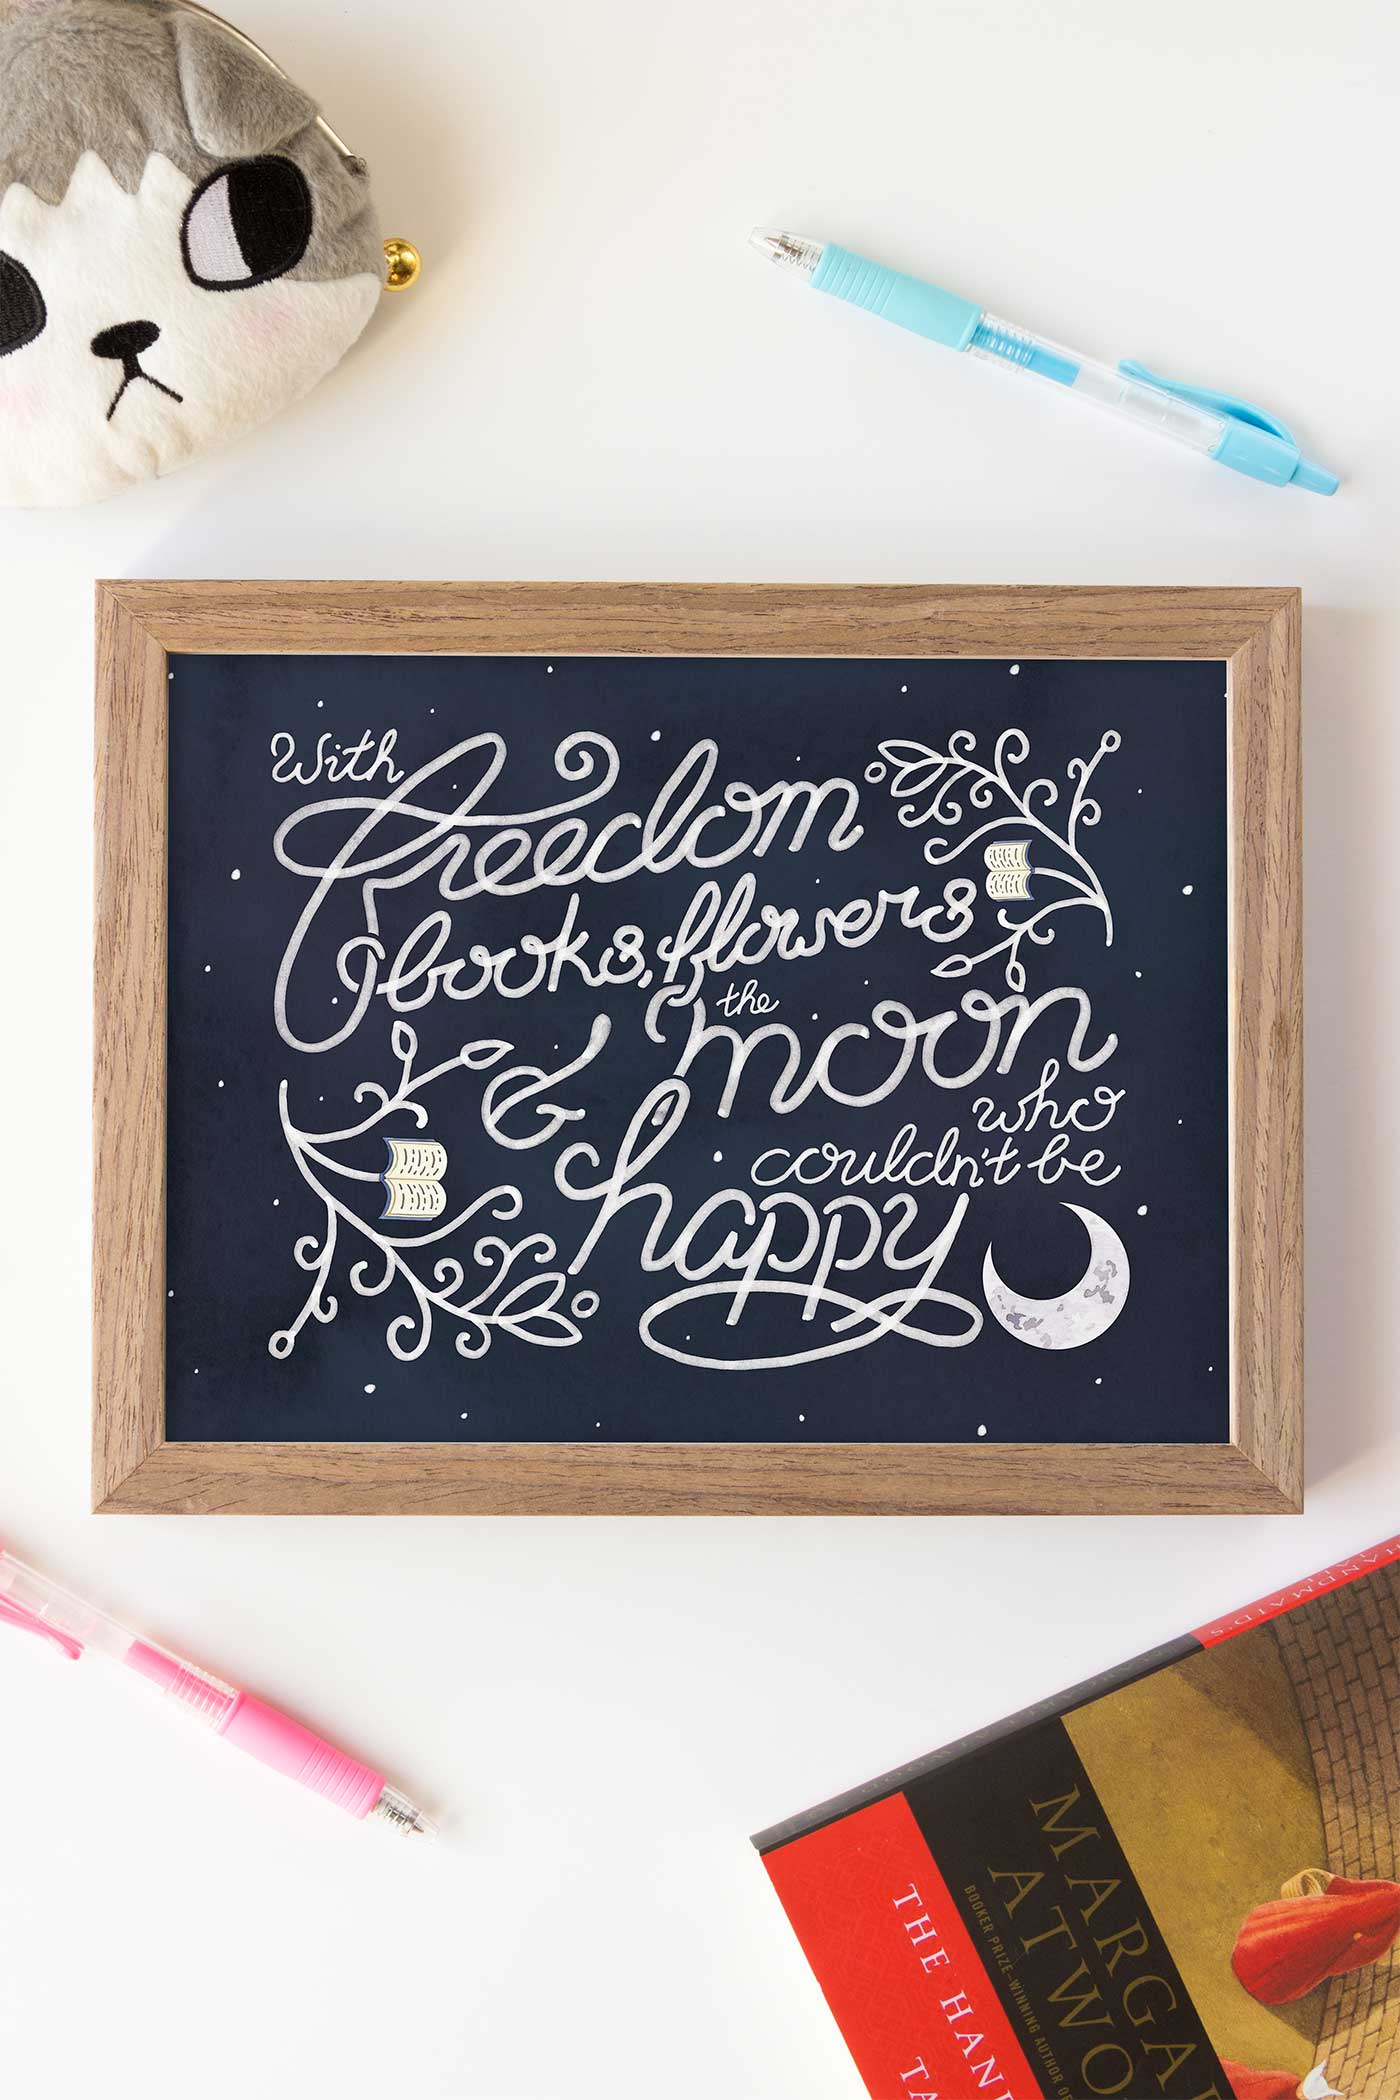 """With freedom, books, flowers, and the moon, who could not be happy?"" - Oscar Wilde Quote Illustrated Art Print"